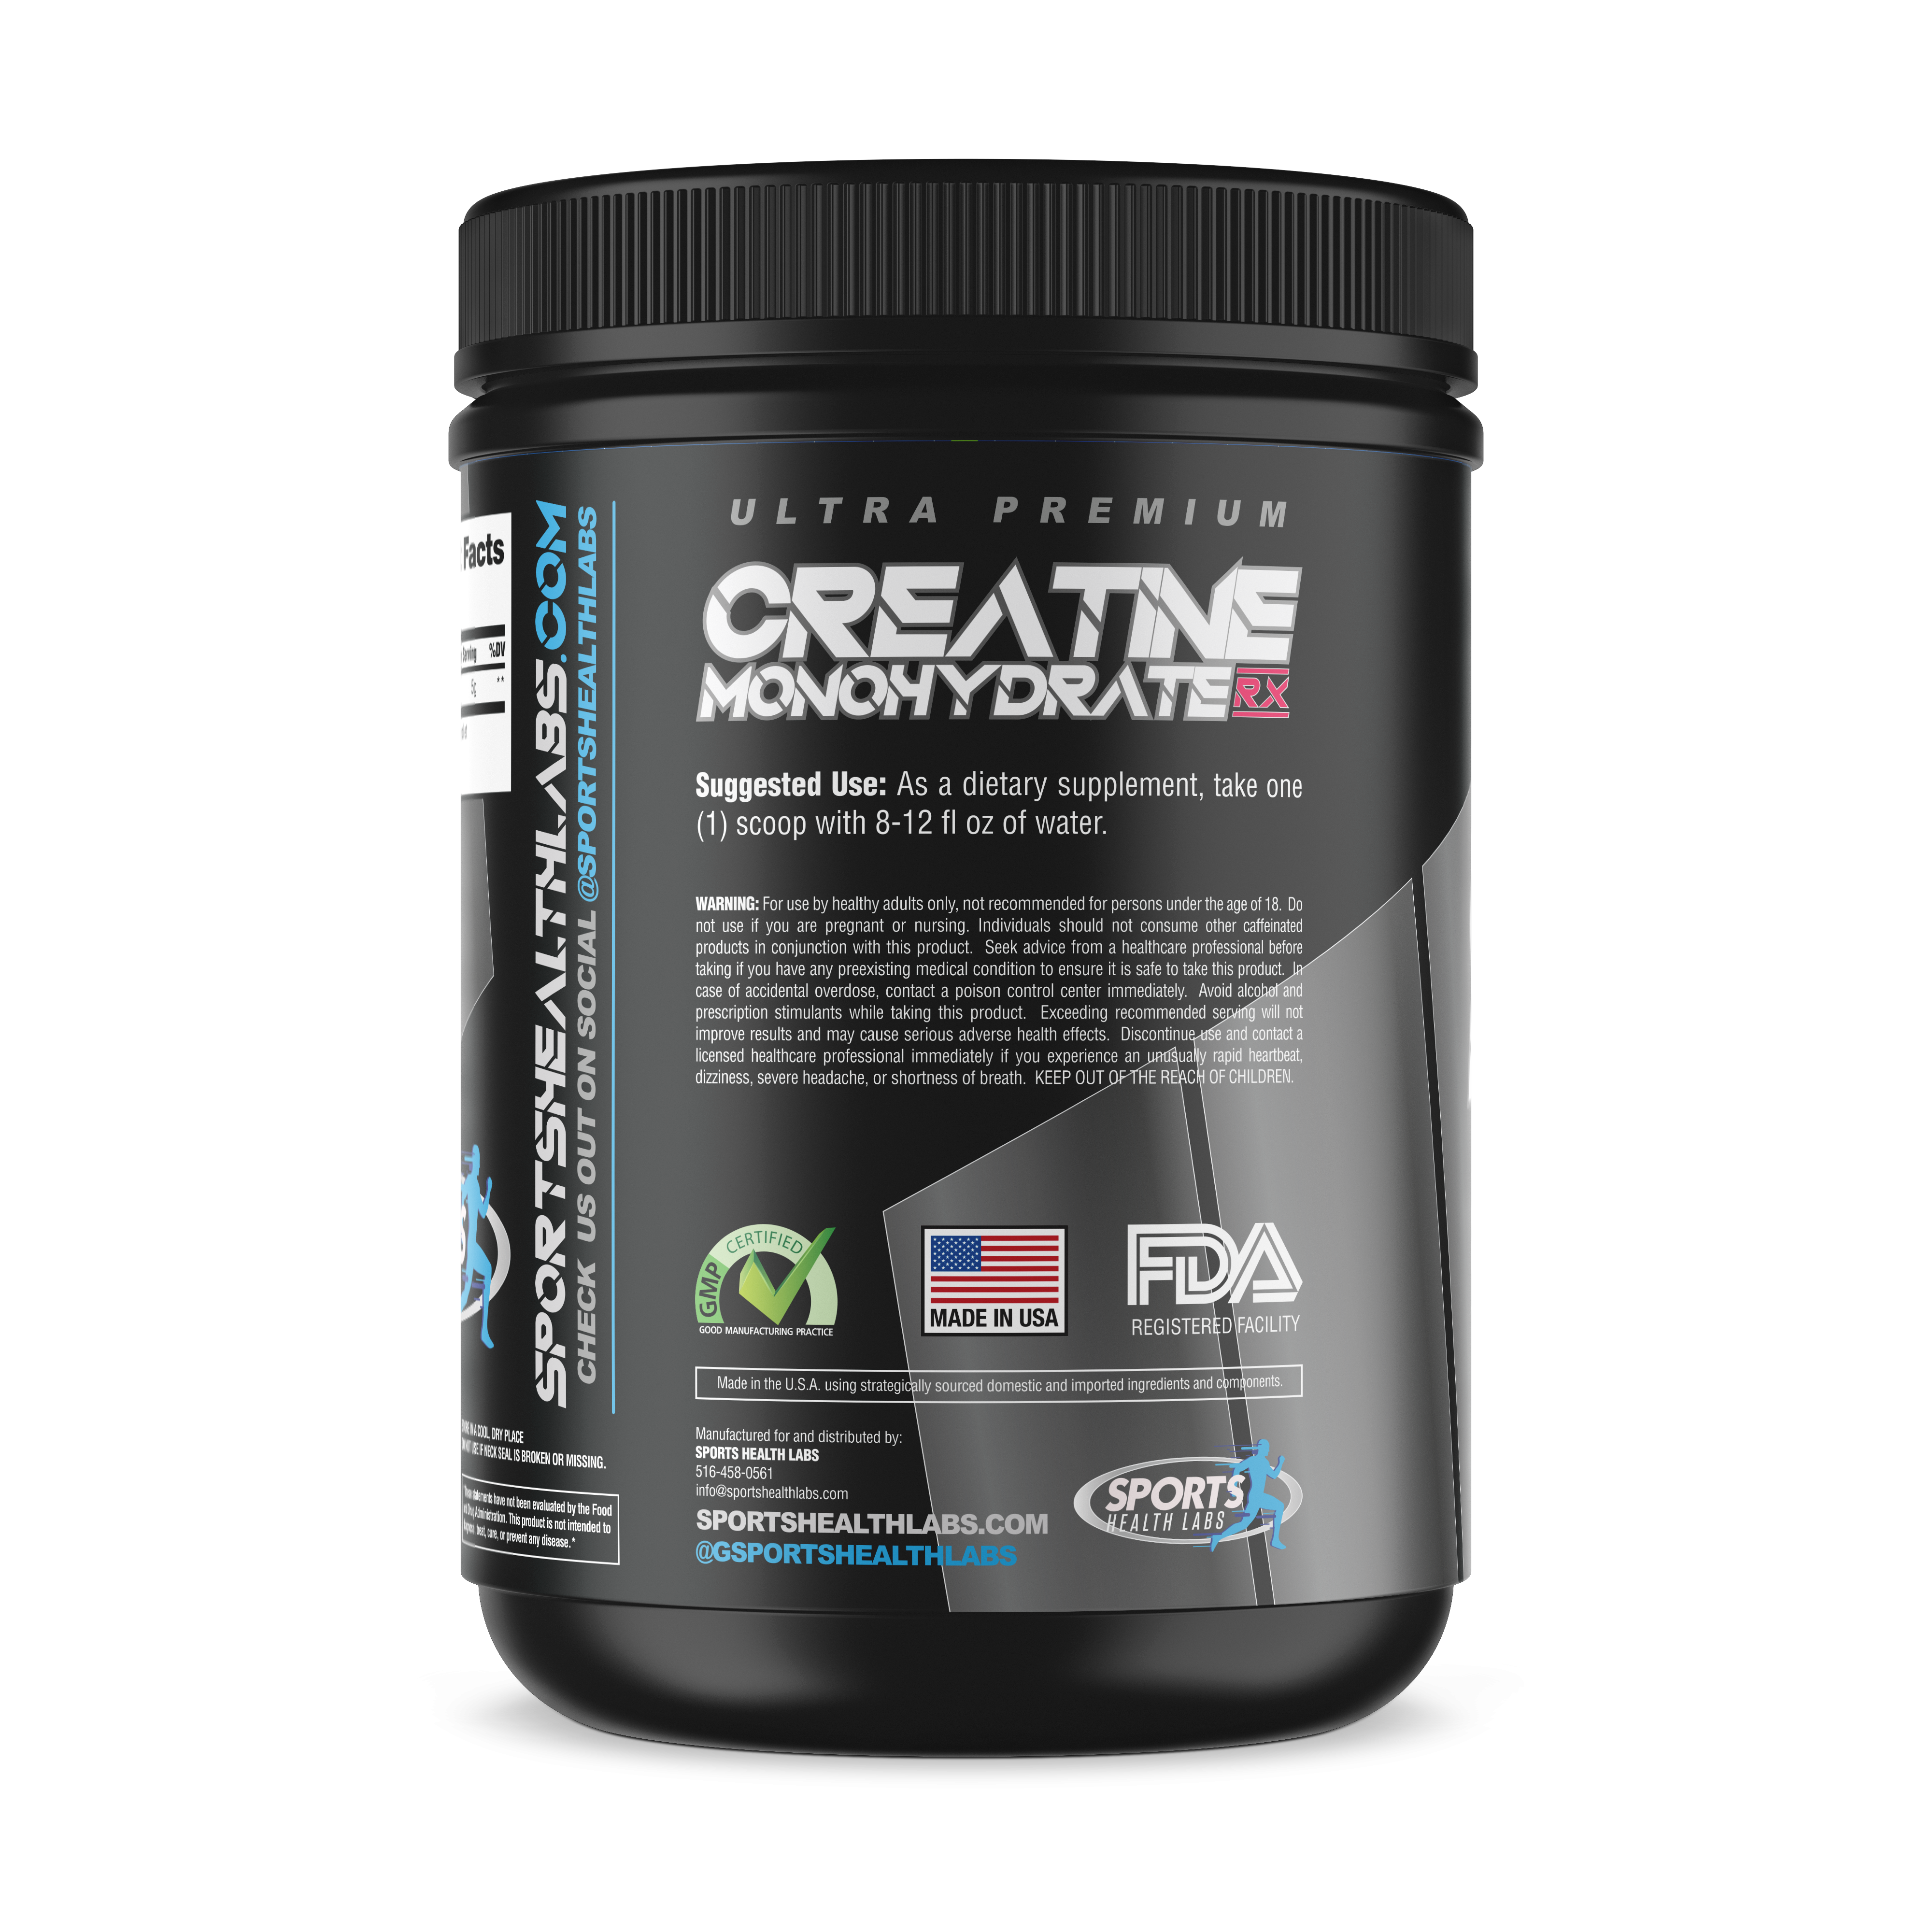 Creatine Monohydrate Supplement Side View